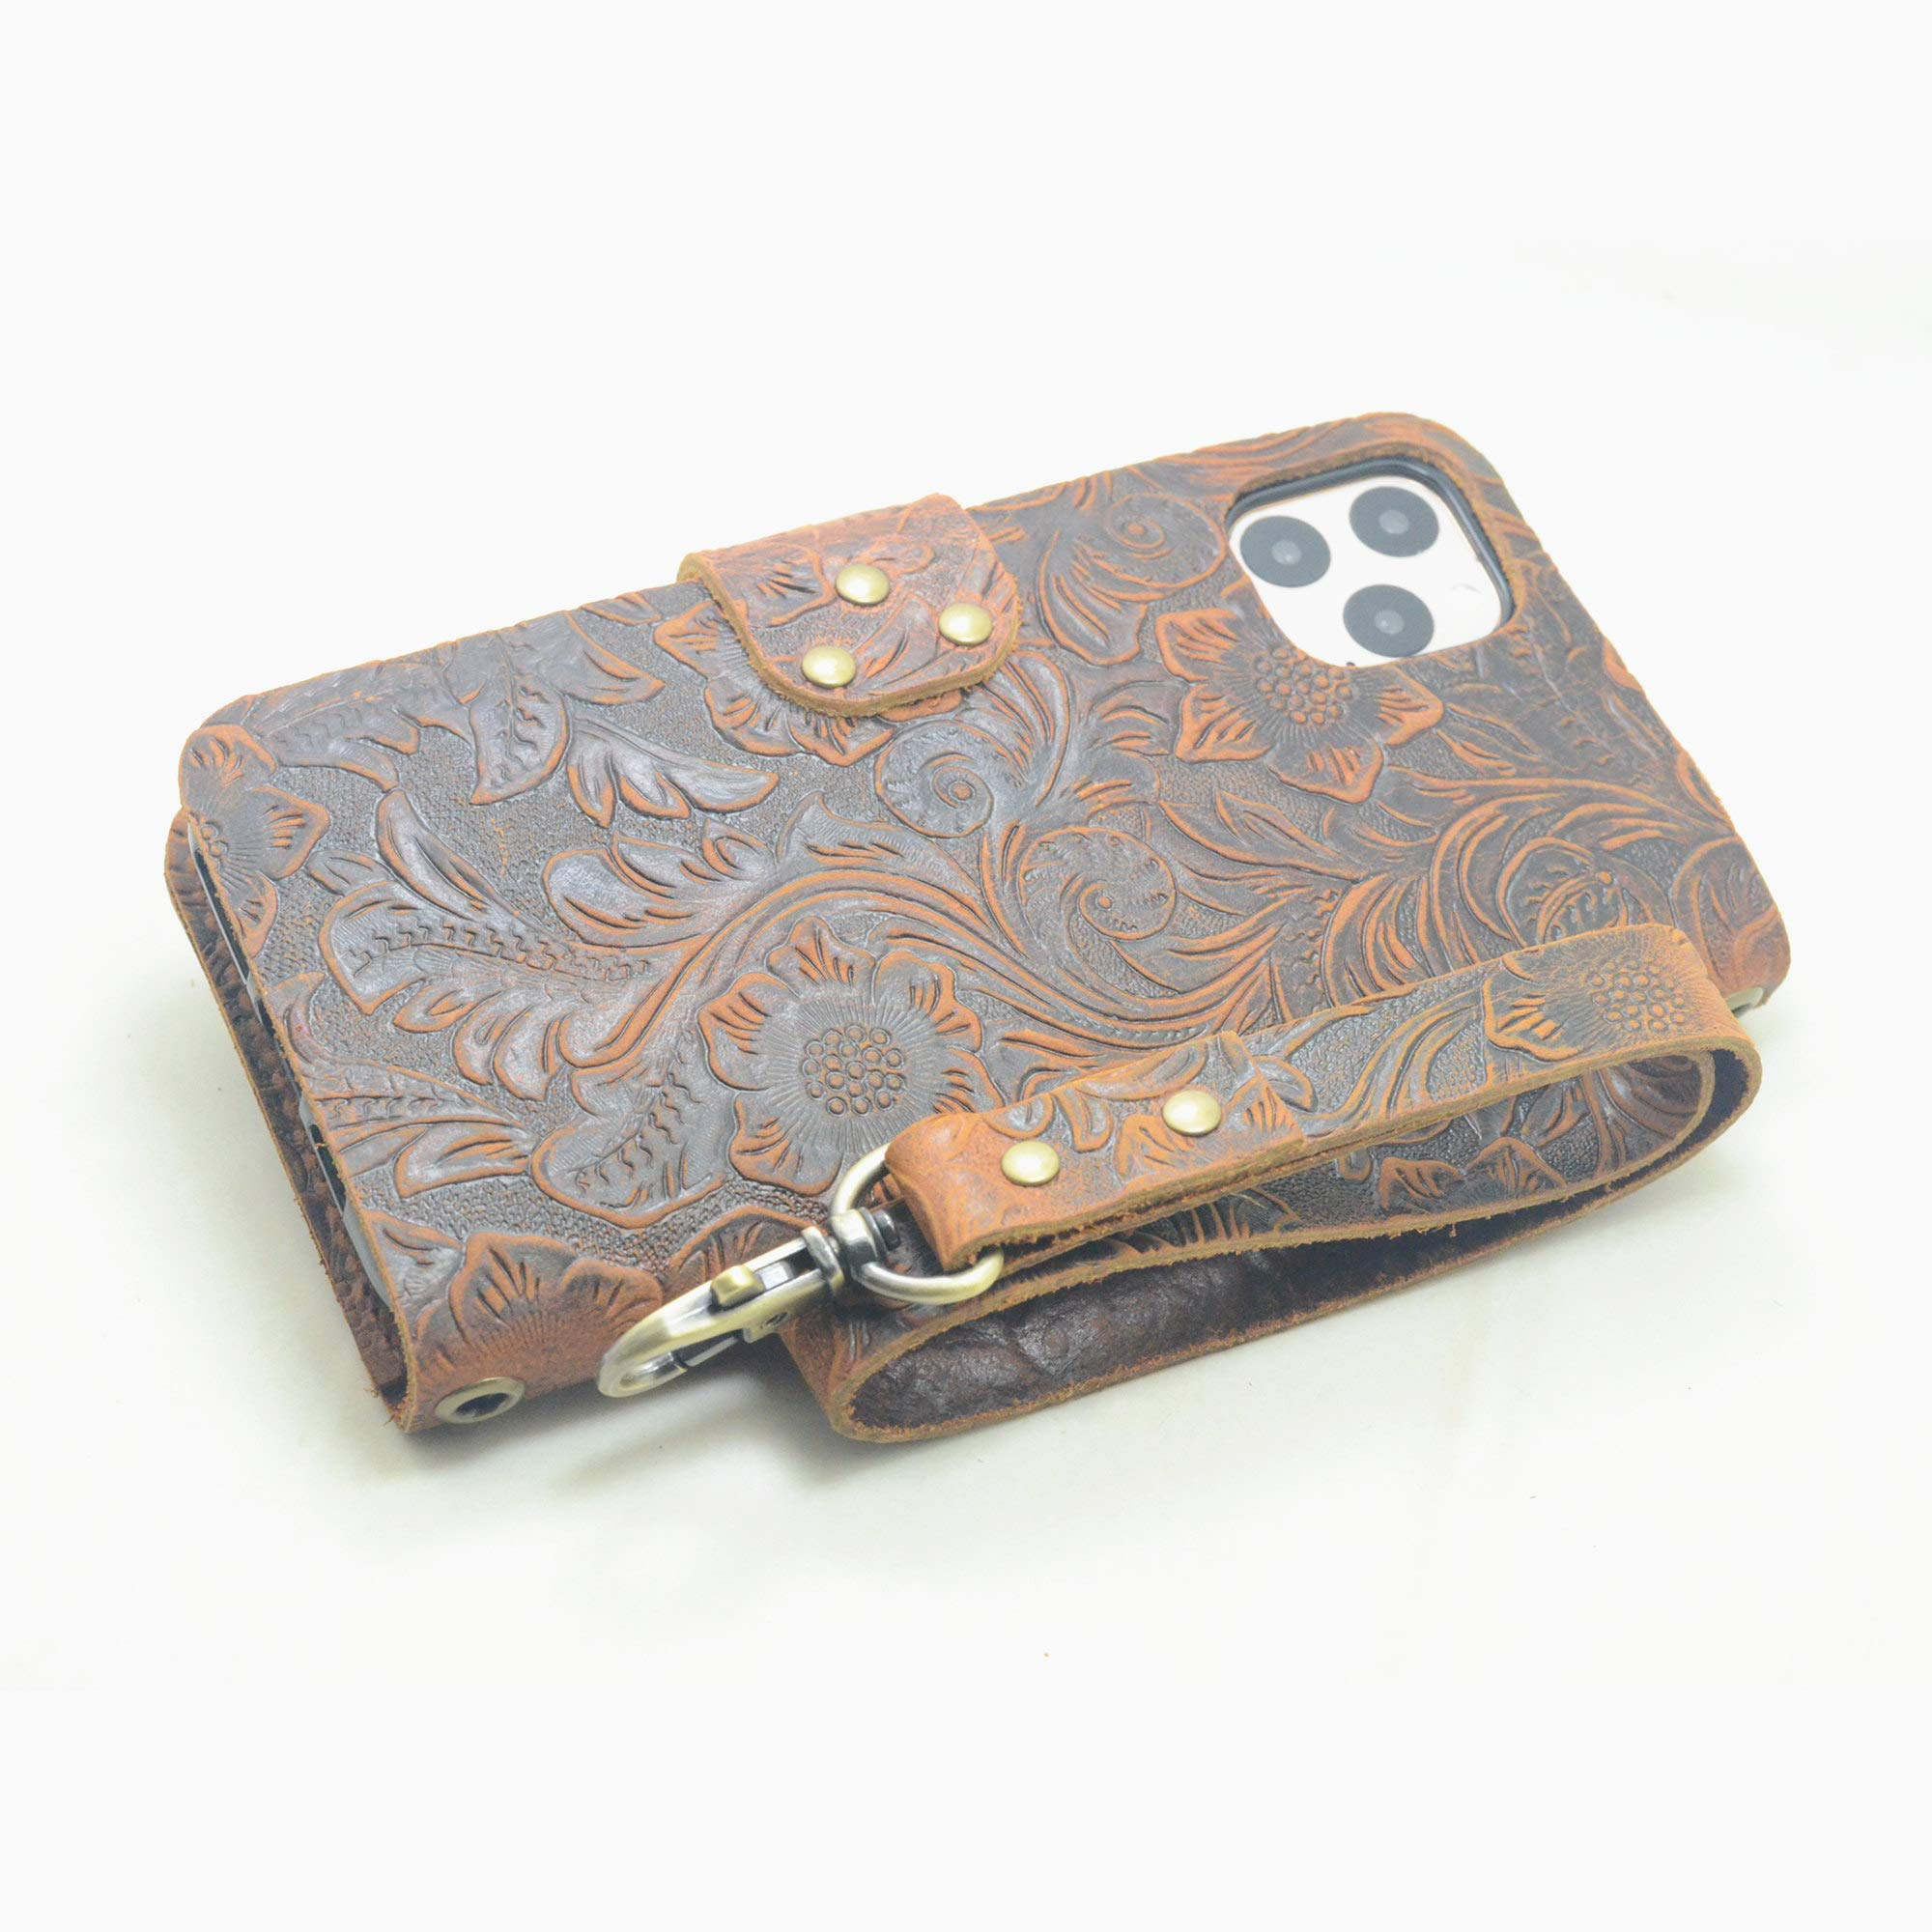 JJNUSA Handmade Genuine Distressed Leather Wallet Case for iPhone 11 Pro Max 6.5 inches Flip Cover with Wristlet Brown